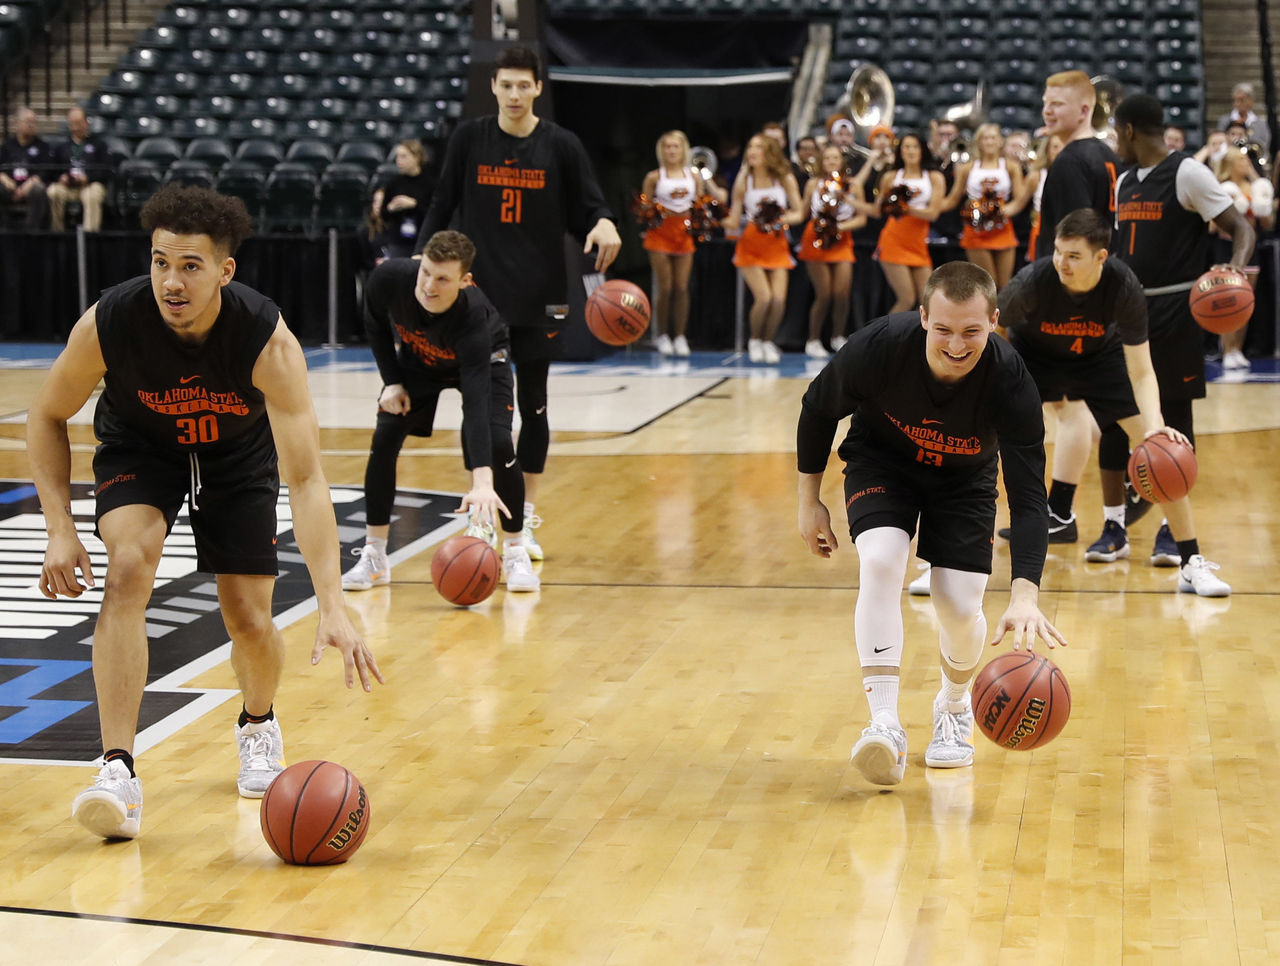 Cropped 2017 03 16t162531z 249477022 nocid rtrmadp 3 ncaa basketball ncaa tournament indianapolis practice